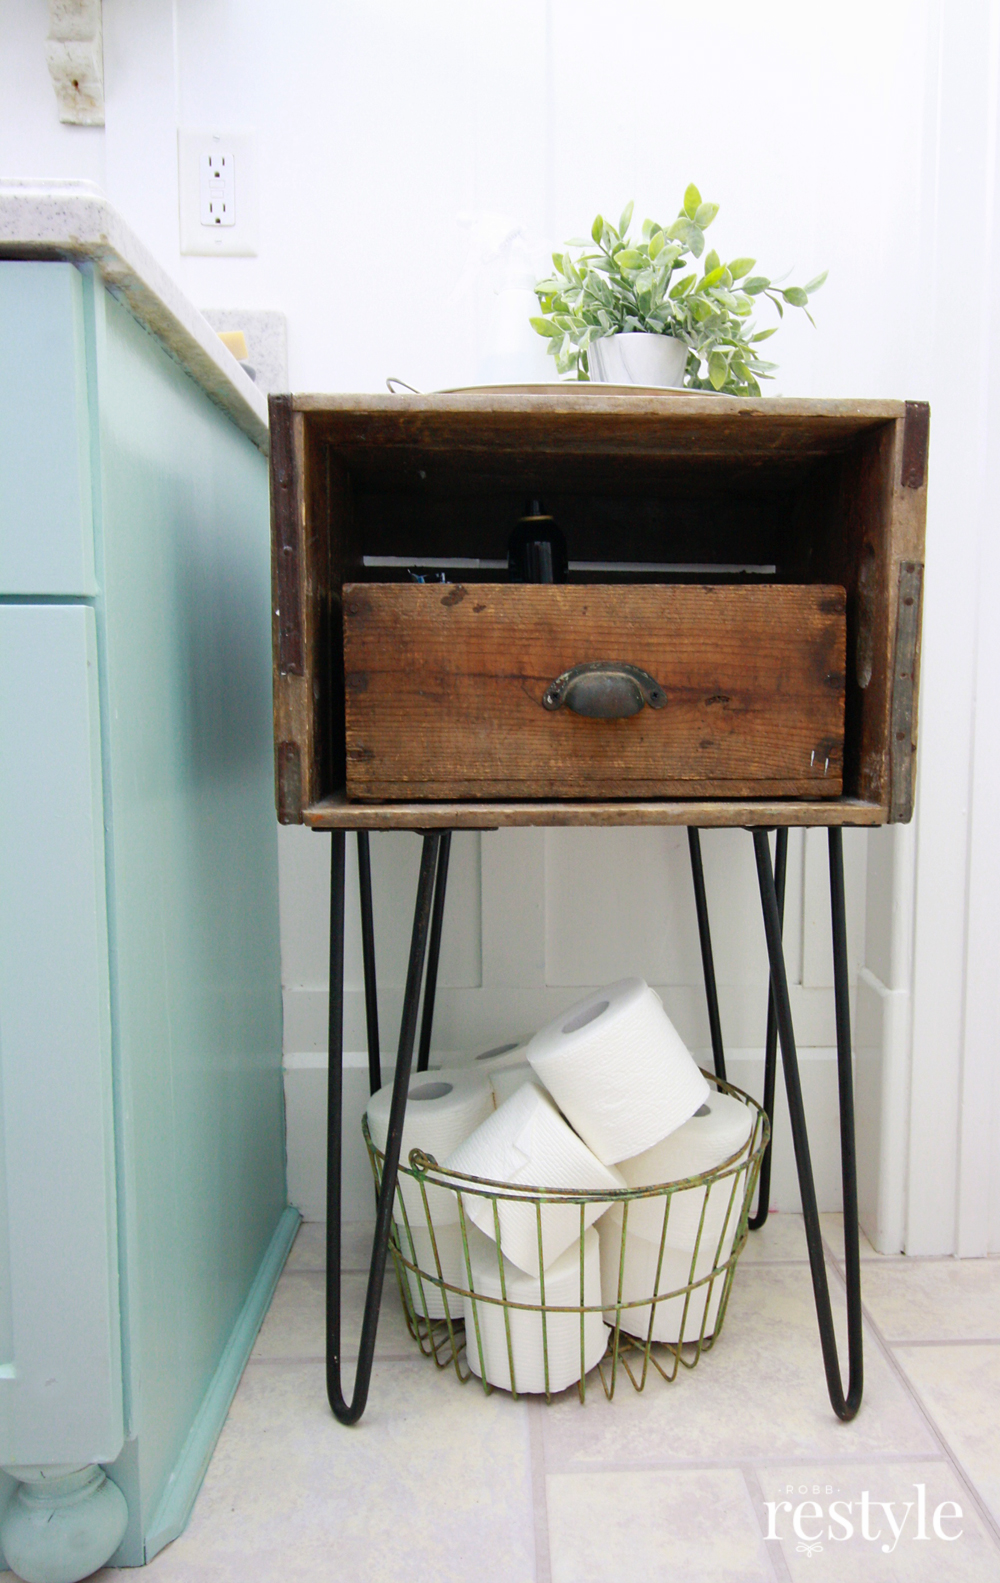 Bathroom Storage with a Vintage Soda Crate & Hairpin Legs